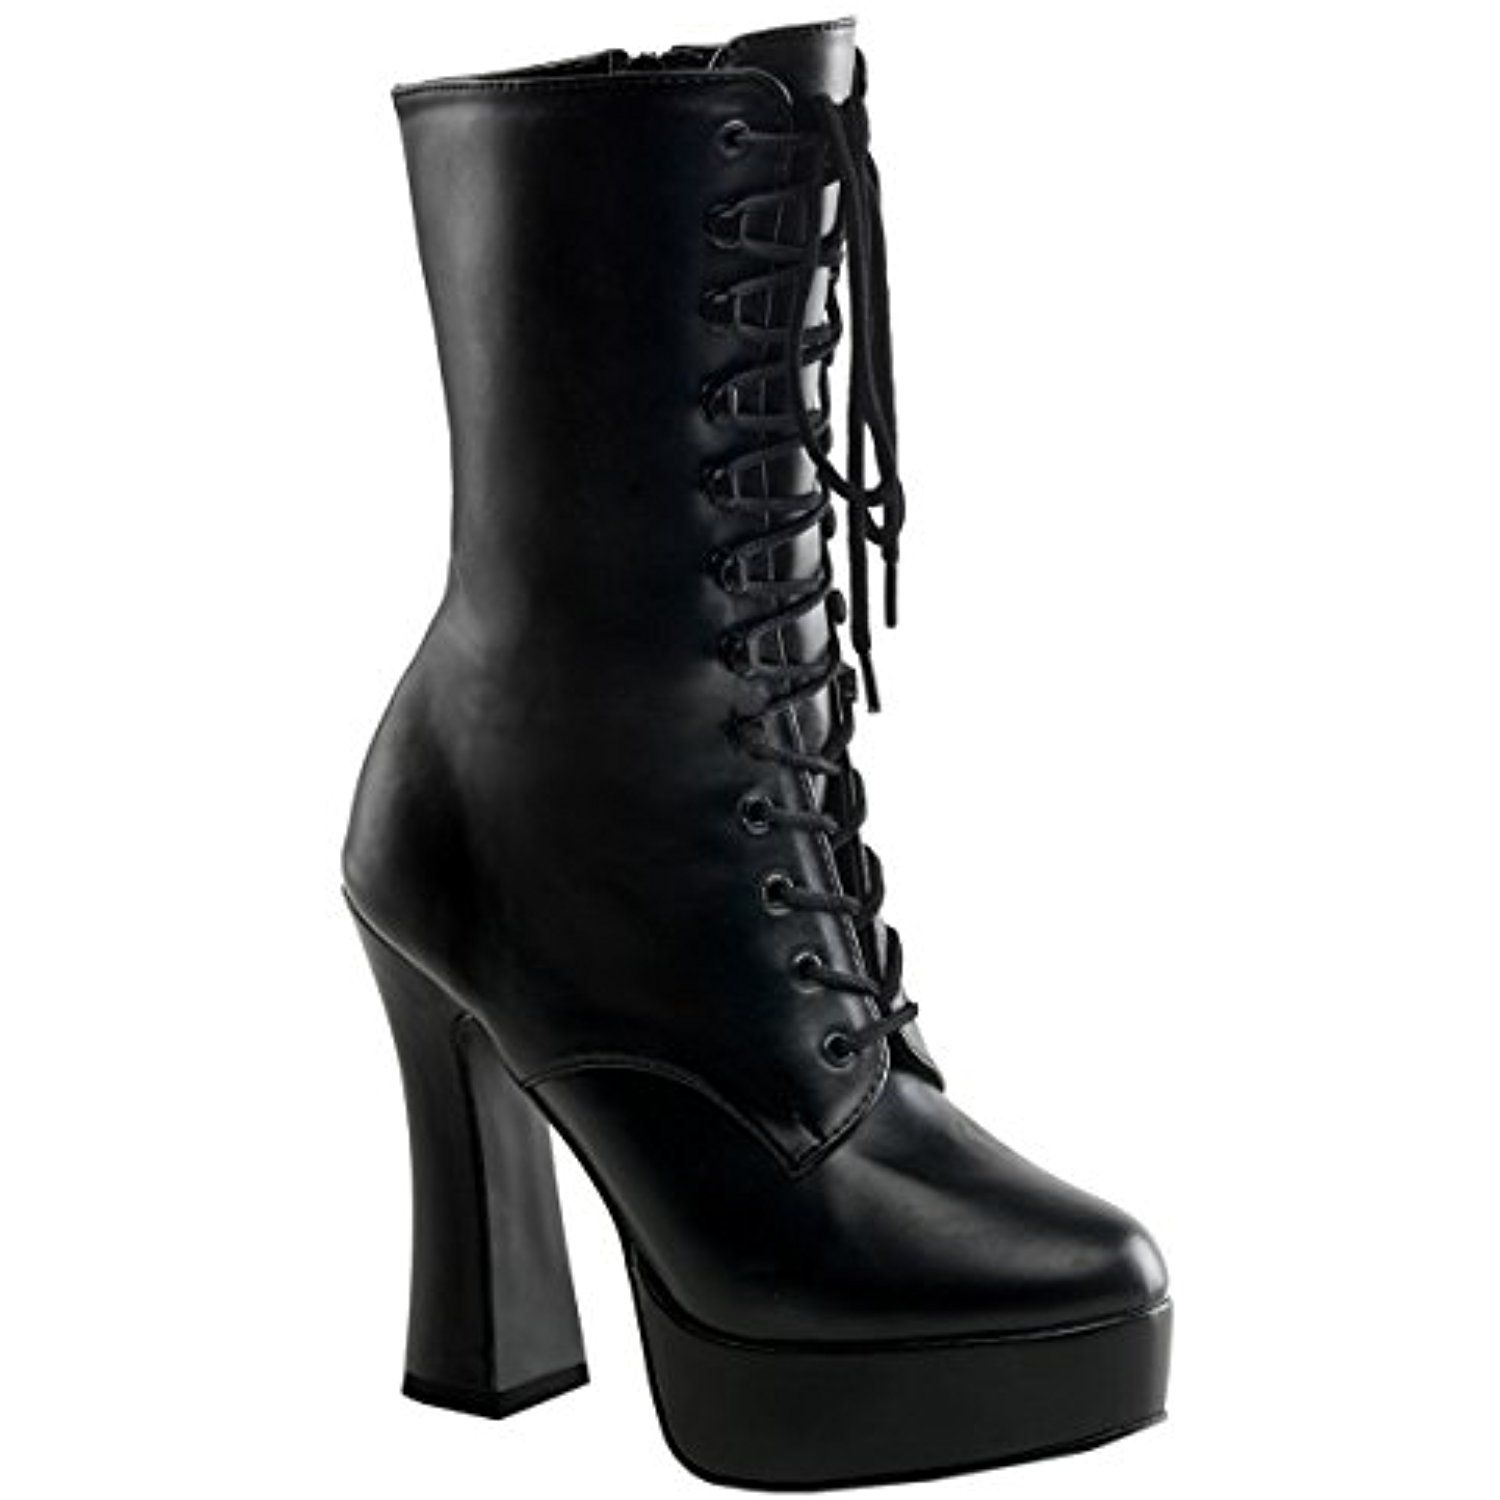 5 Inch Hot Gothic Ankle Boots Stack Heel w/ 1 1/2 Inch Platform Black Poly